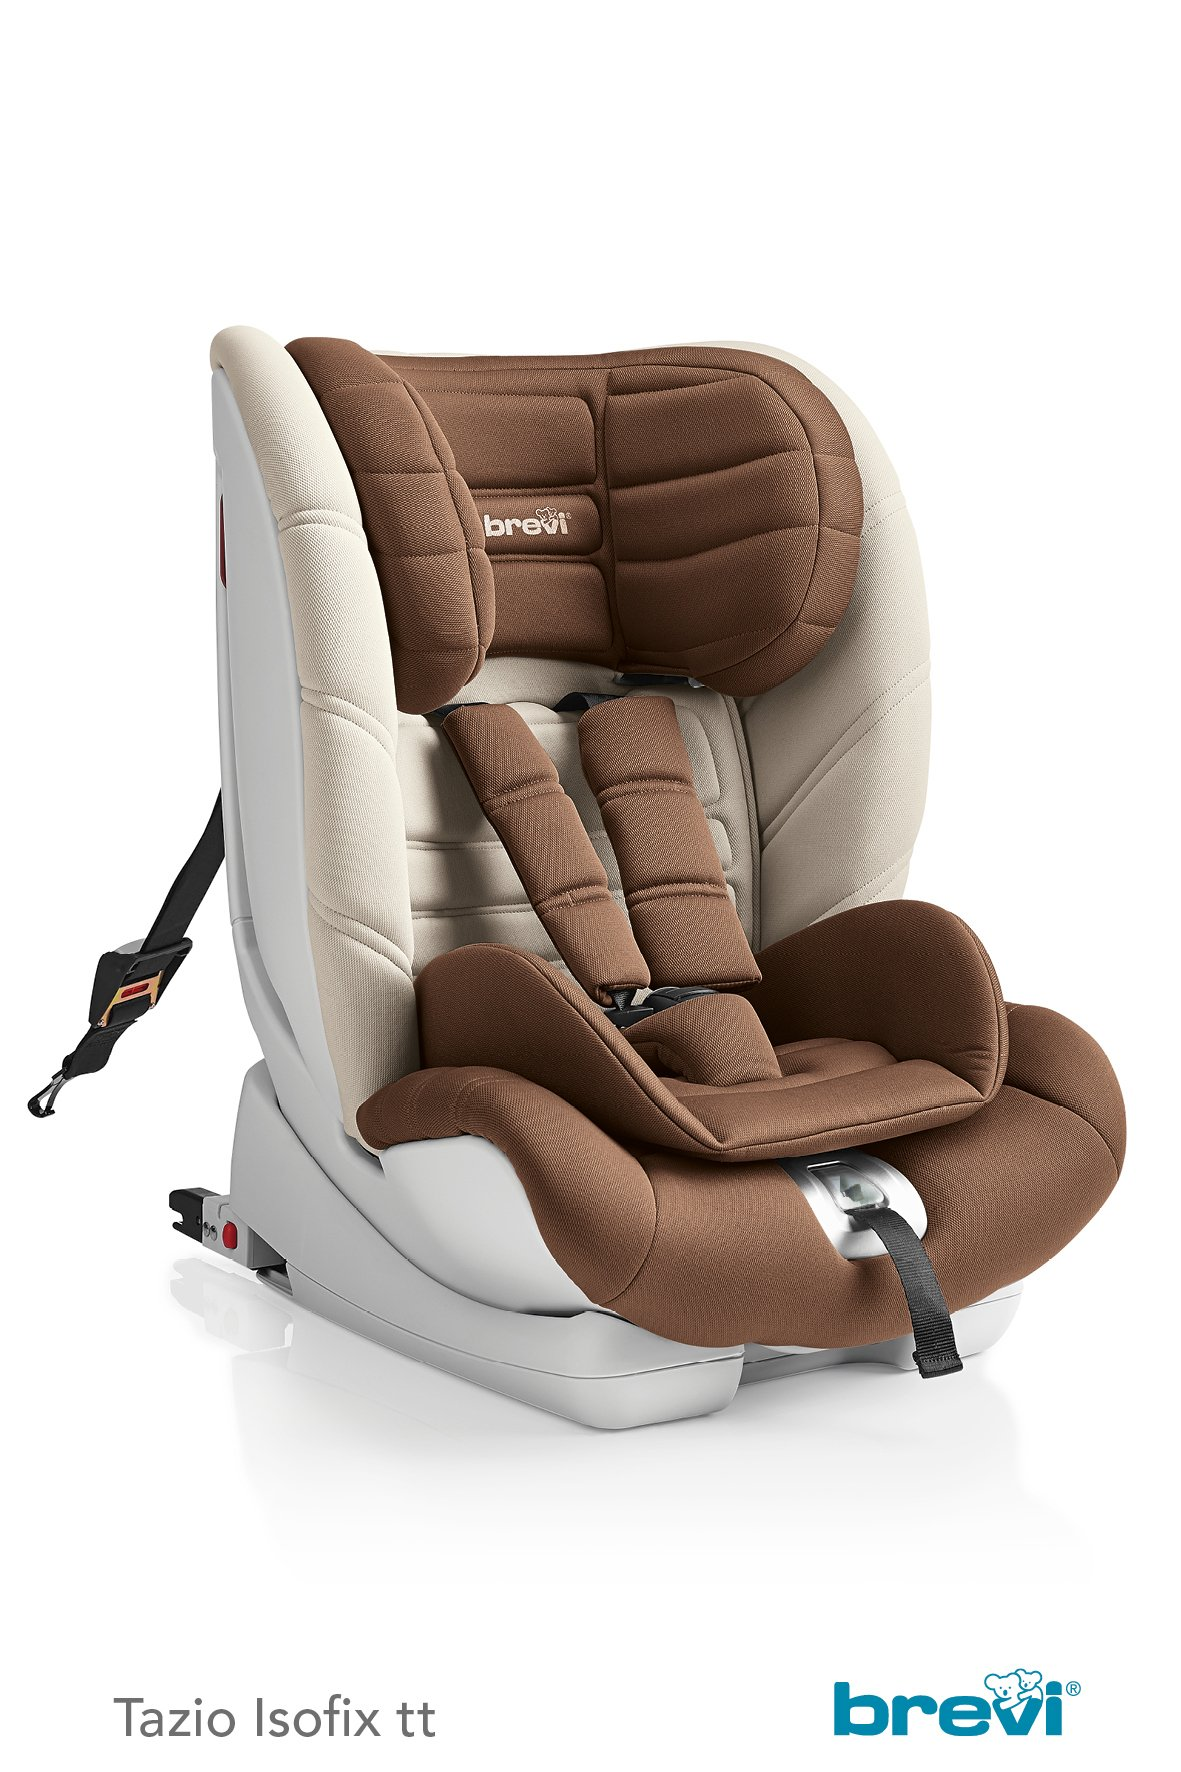 brevi child car seat tazio isofix tt 2018 brown buy at kidsroom car seats. Black Bedroom Furniture Sets. Home Design Ideas